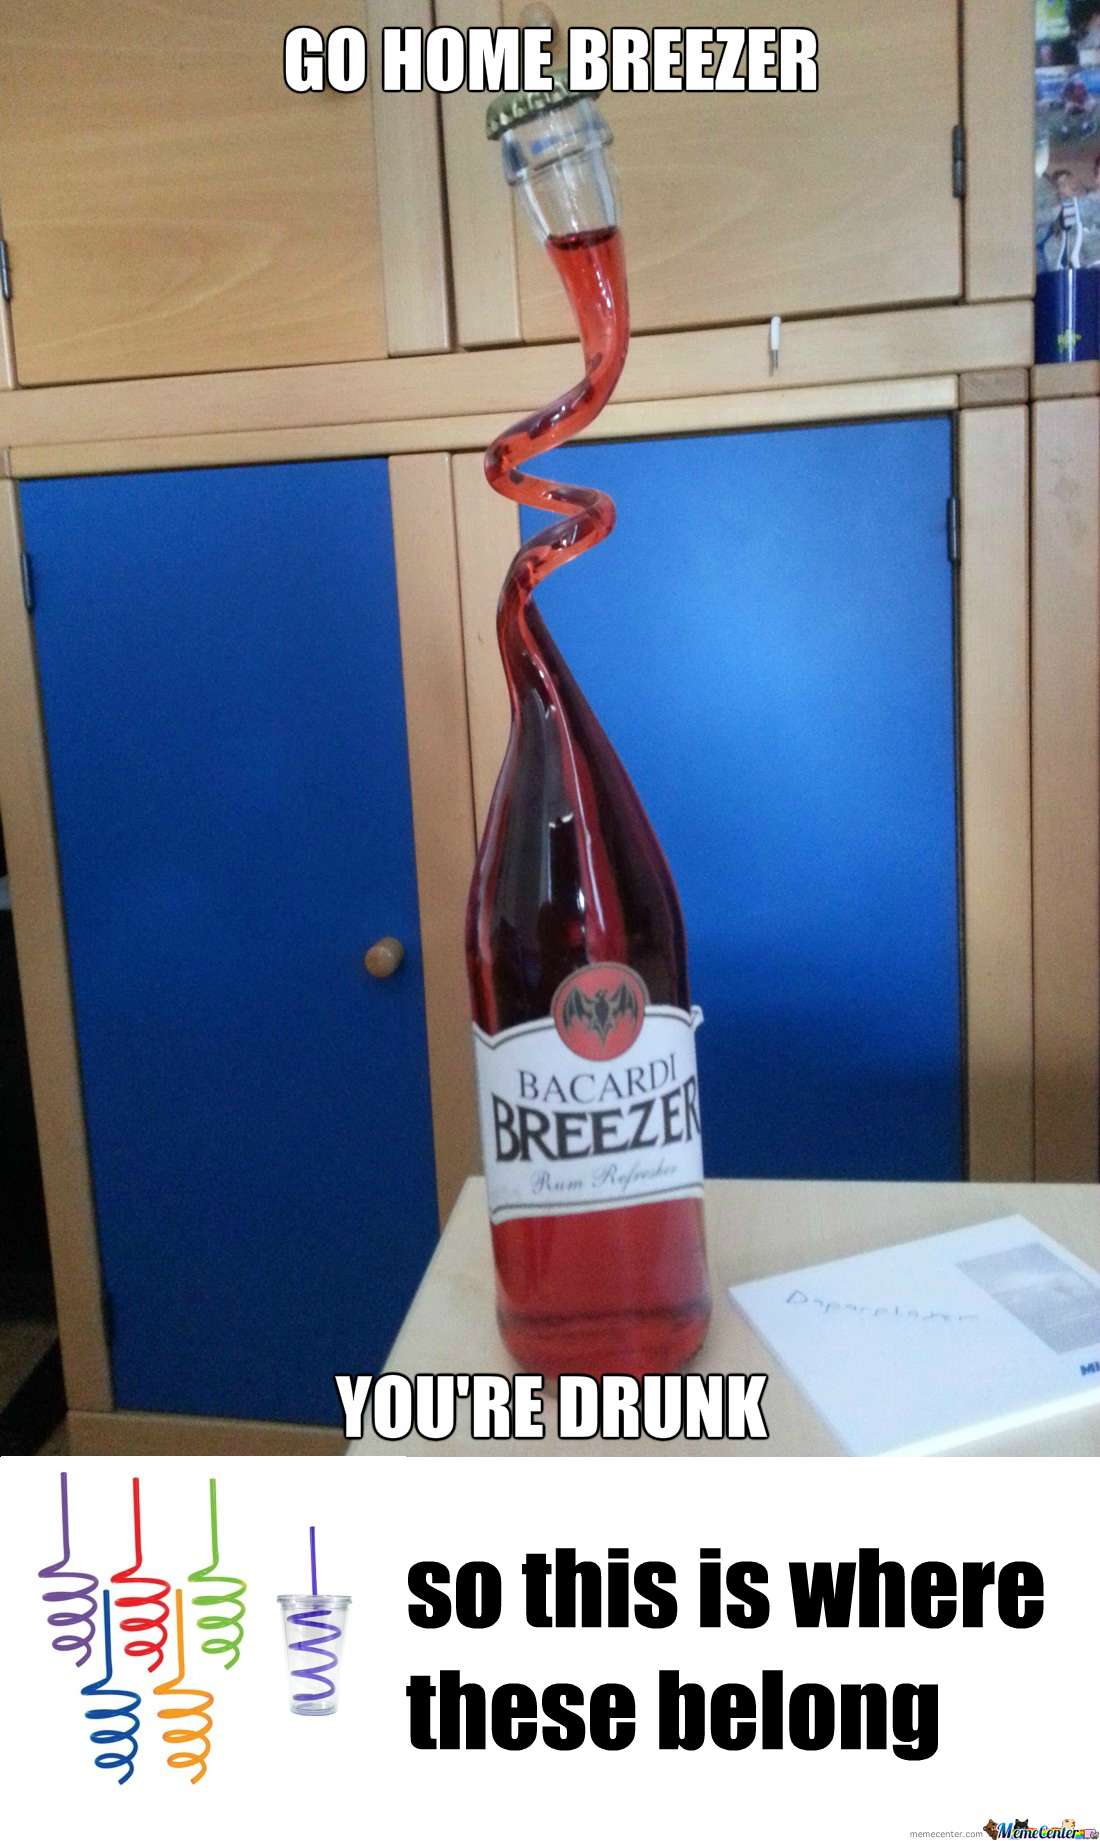 [RMX] Breezer = Drunk?? What??